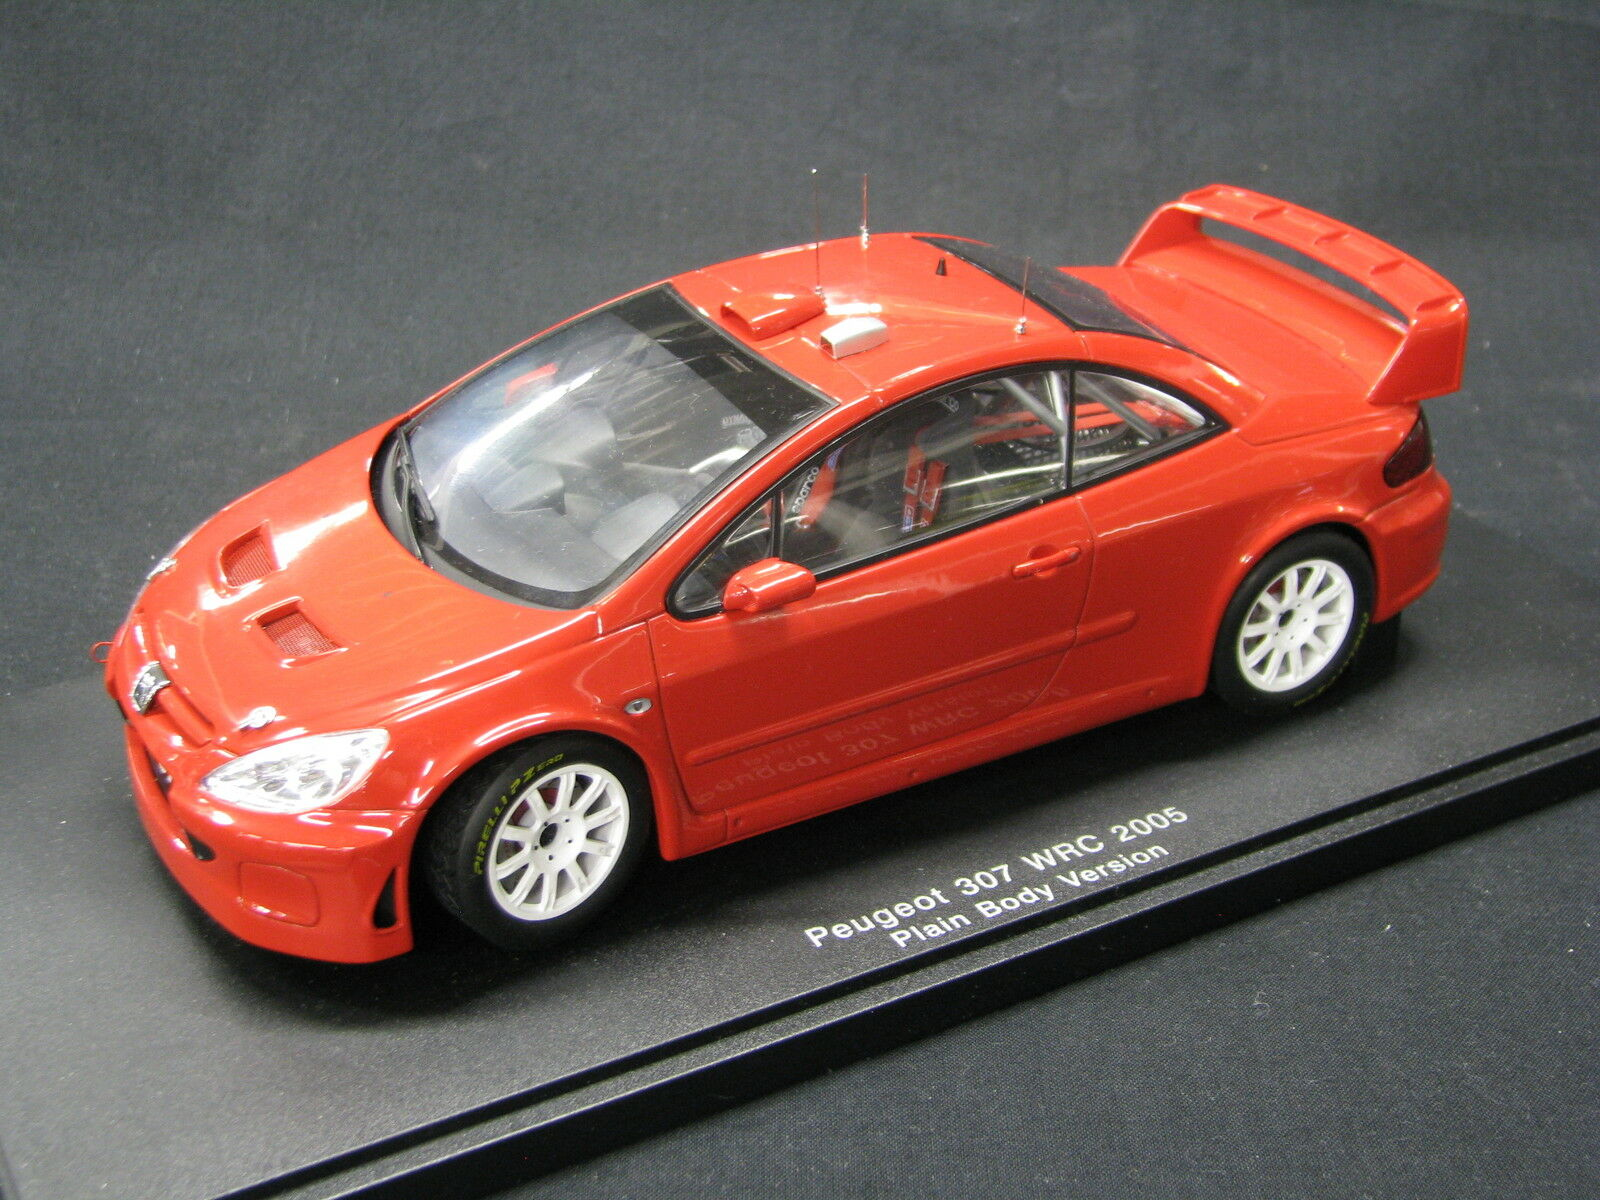 AutoArt Peugeot 307 WRC 2005 1 18 Plain Body Version (MCC)